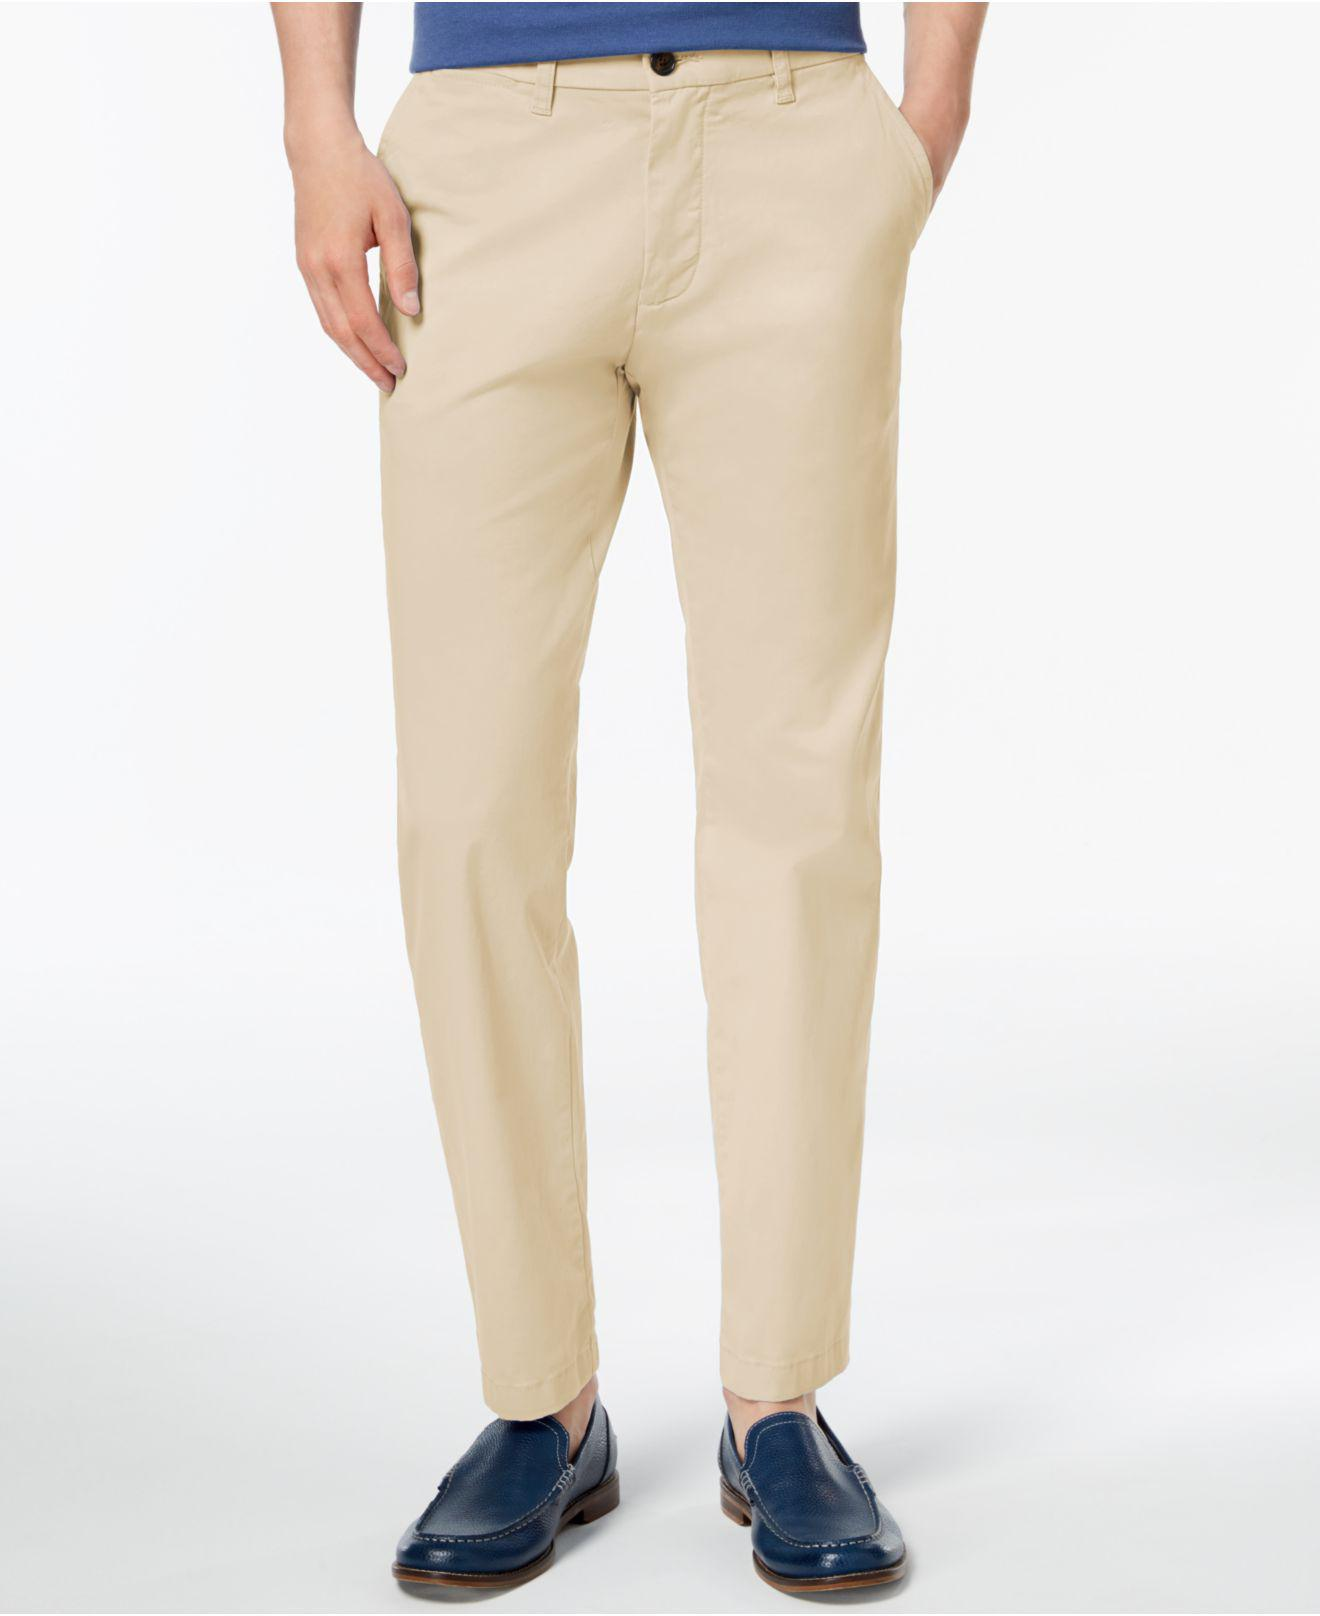 201dd2e10 Tommy Hilfiger Custom-fit Chinos in Natural for Men - Save 51% - Lyst